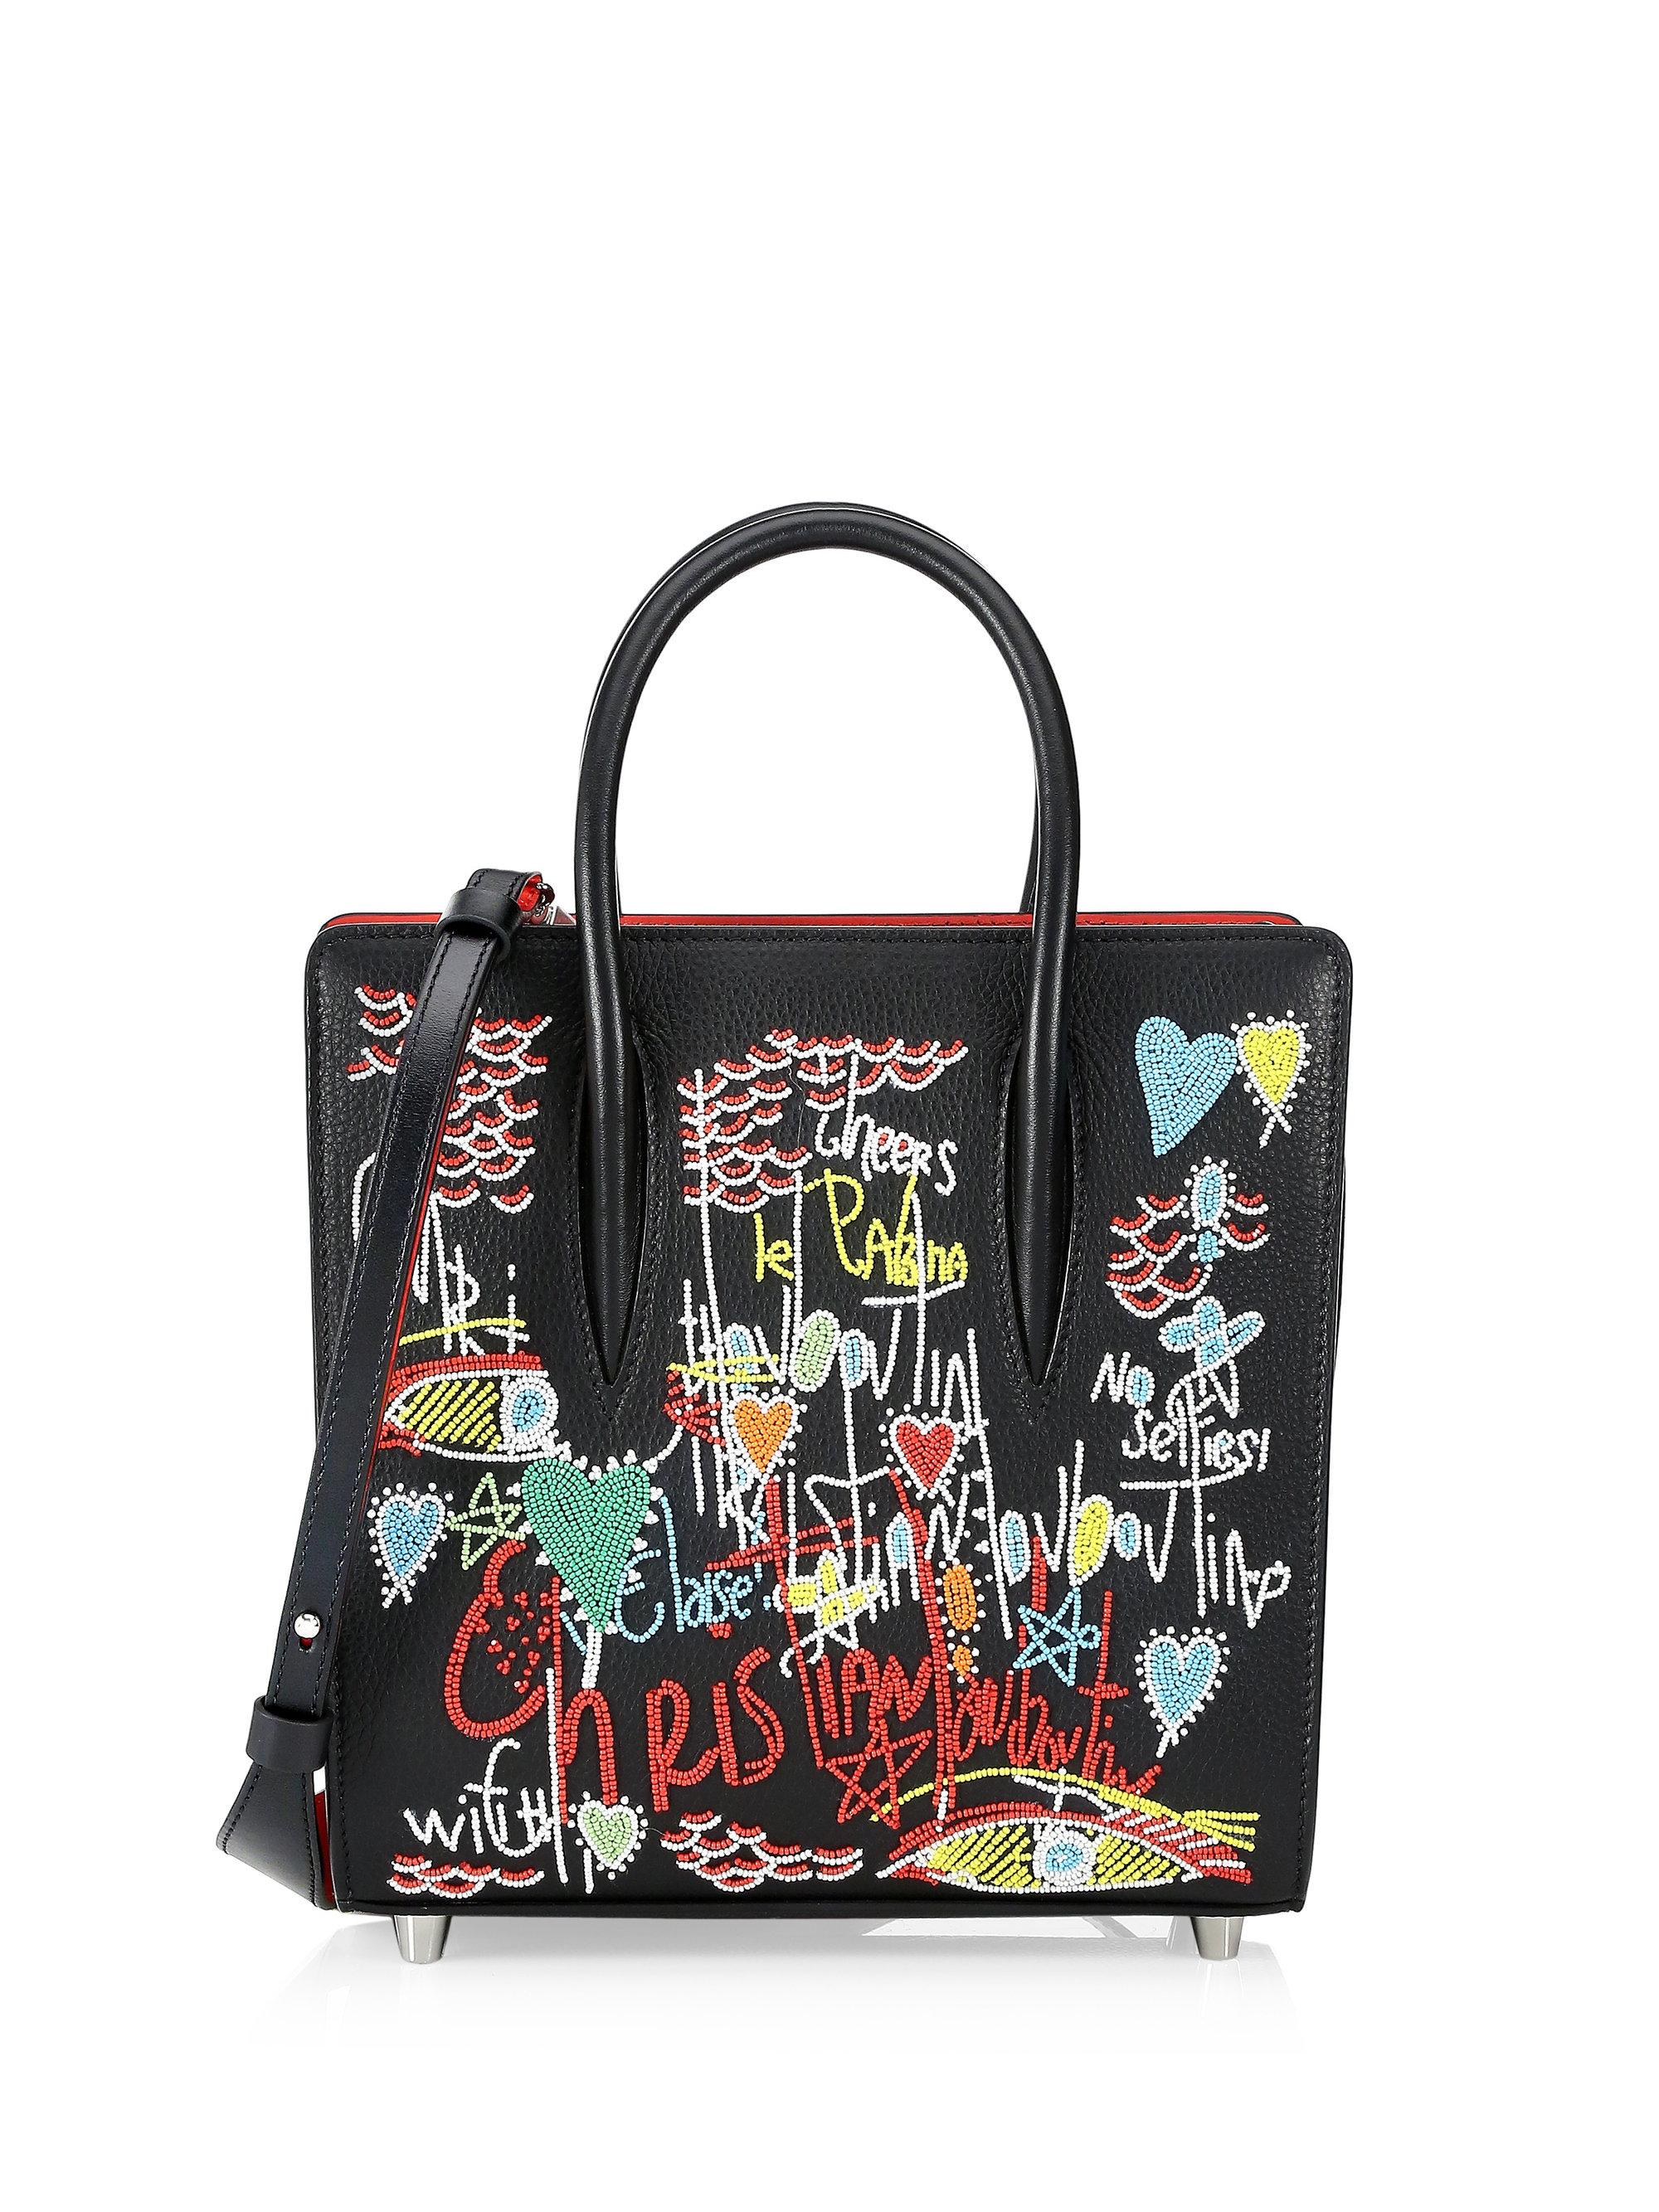 dacd2534ace Christian Louboutin Paloma Small Embellished Tote in Black - Lyst